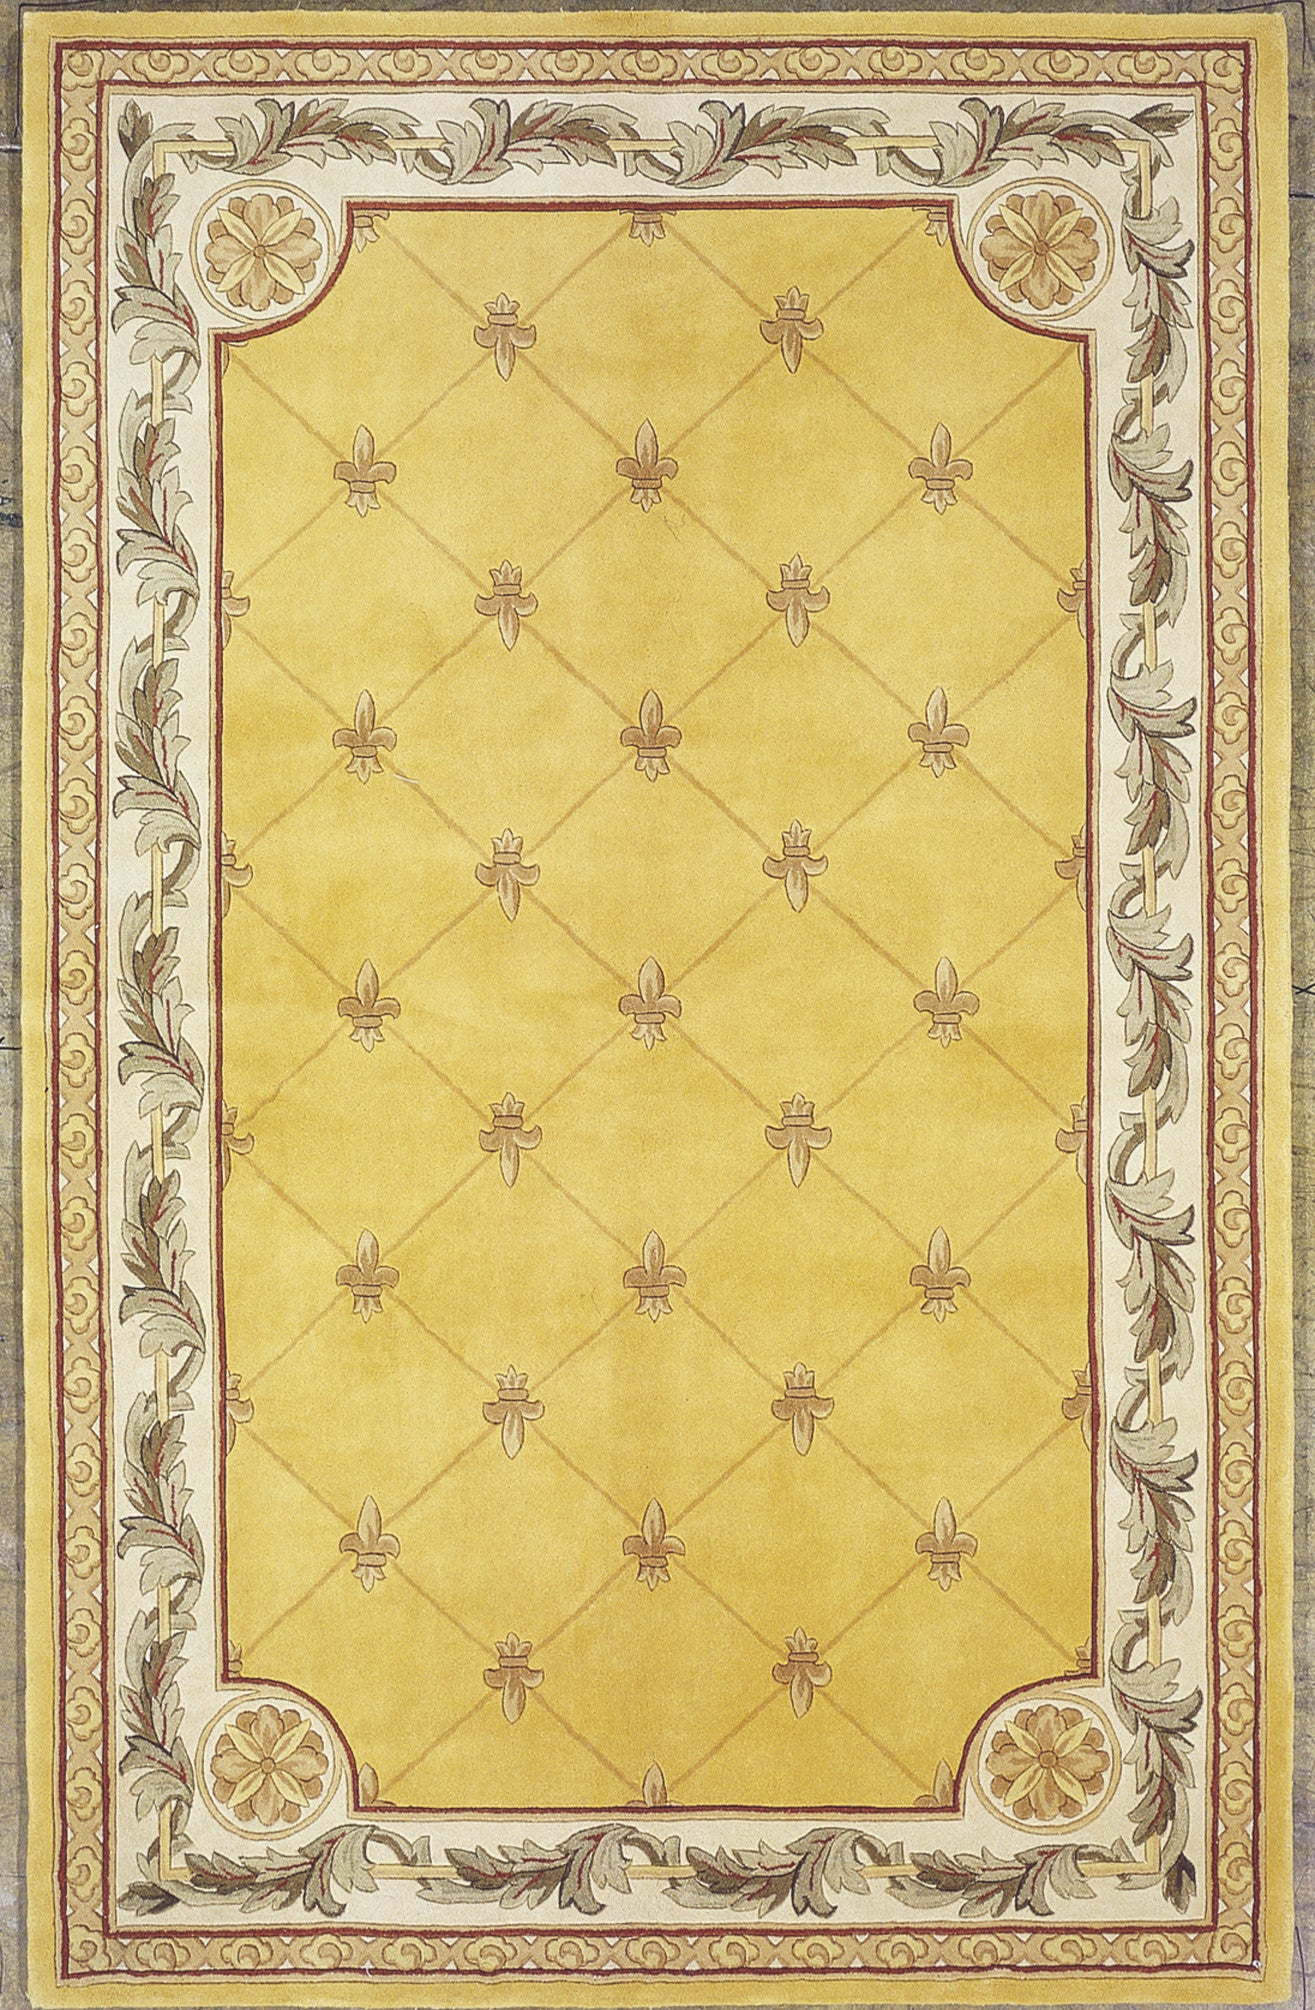 KAS Jewel 0308 Gold Fleur-De-Lis Hand Tufted Area Rug